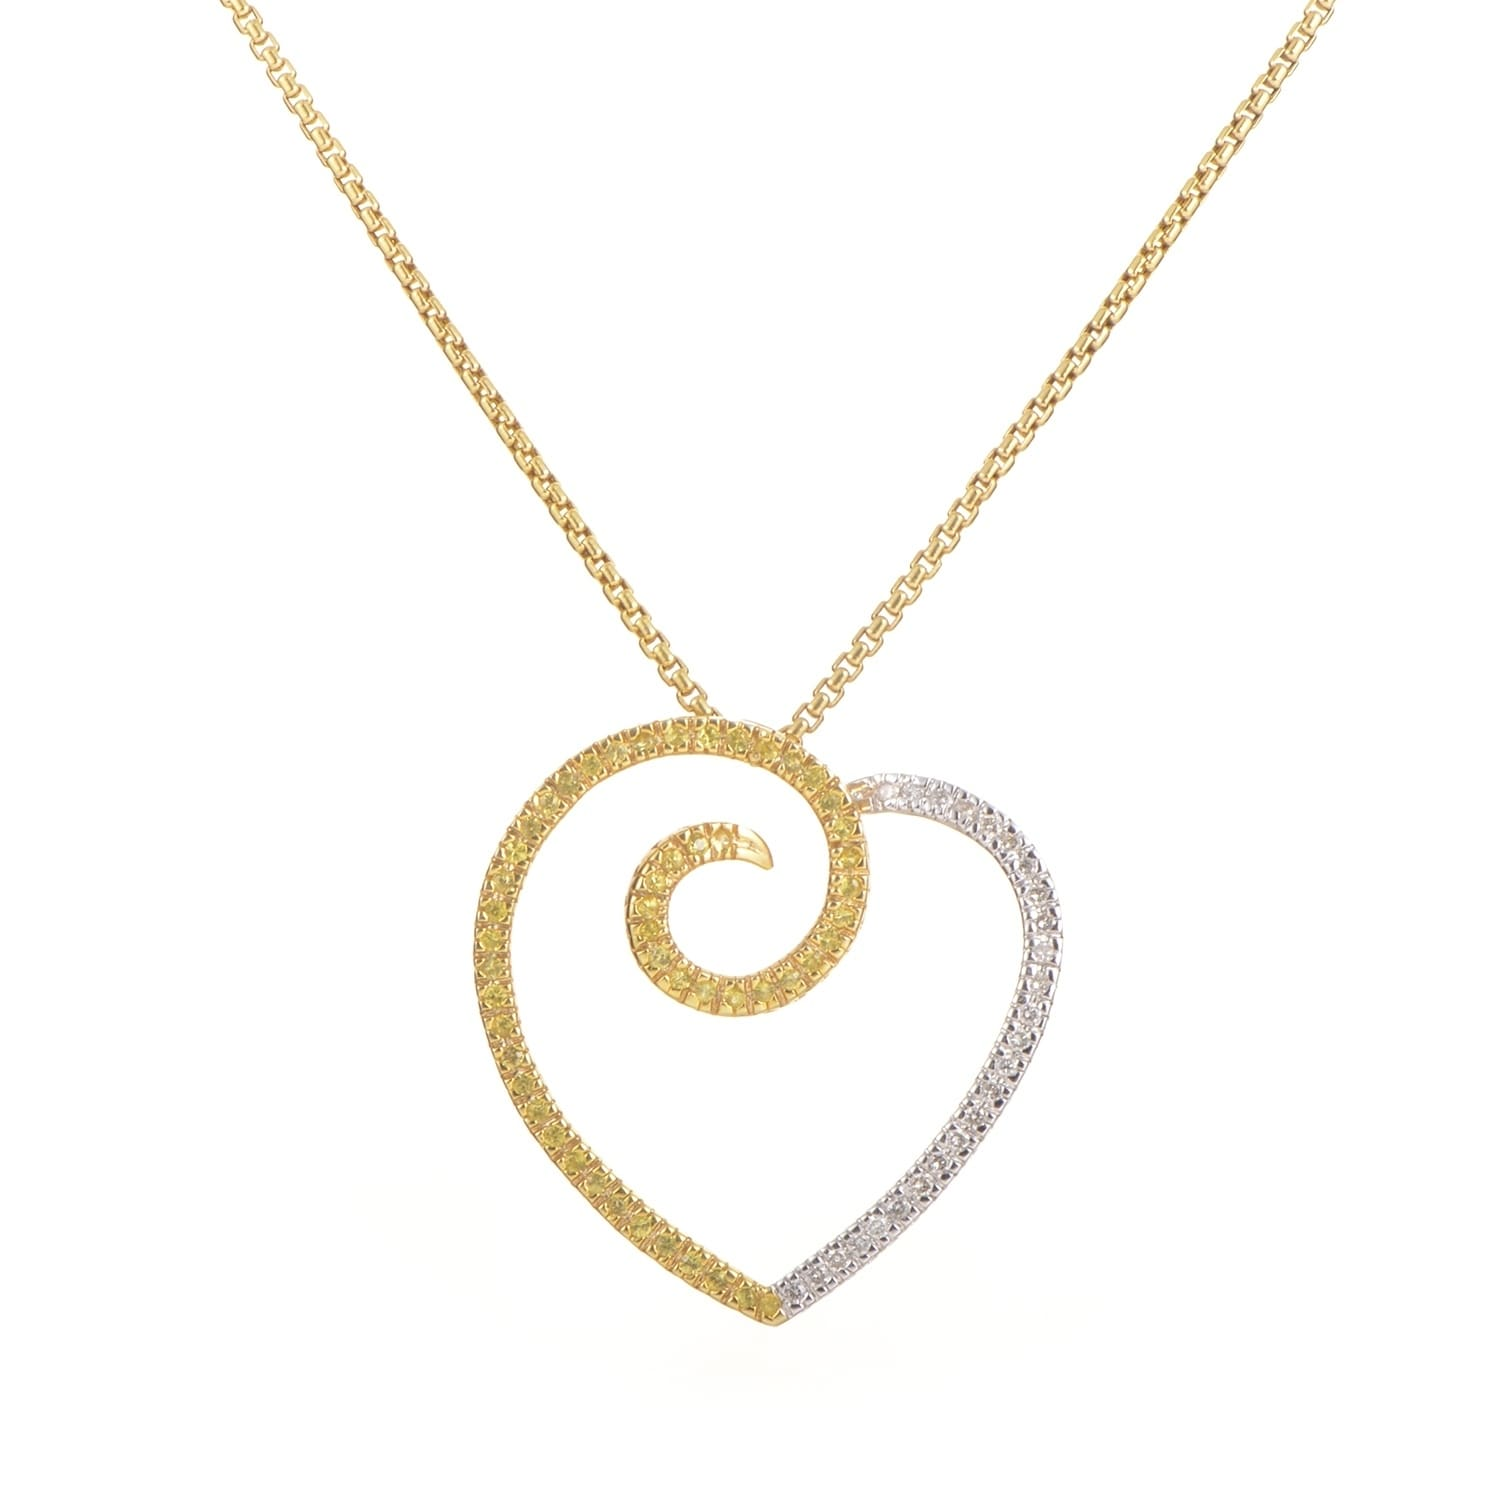 i diamond pendantneck white necklace gold and pendant neck yellow sapphire